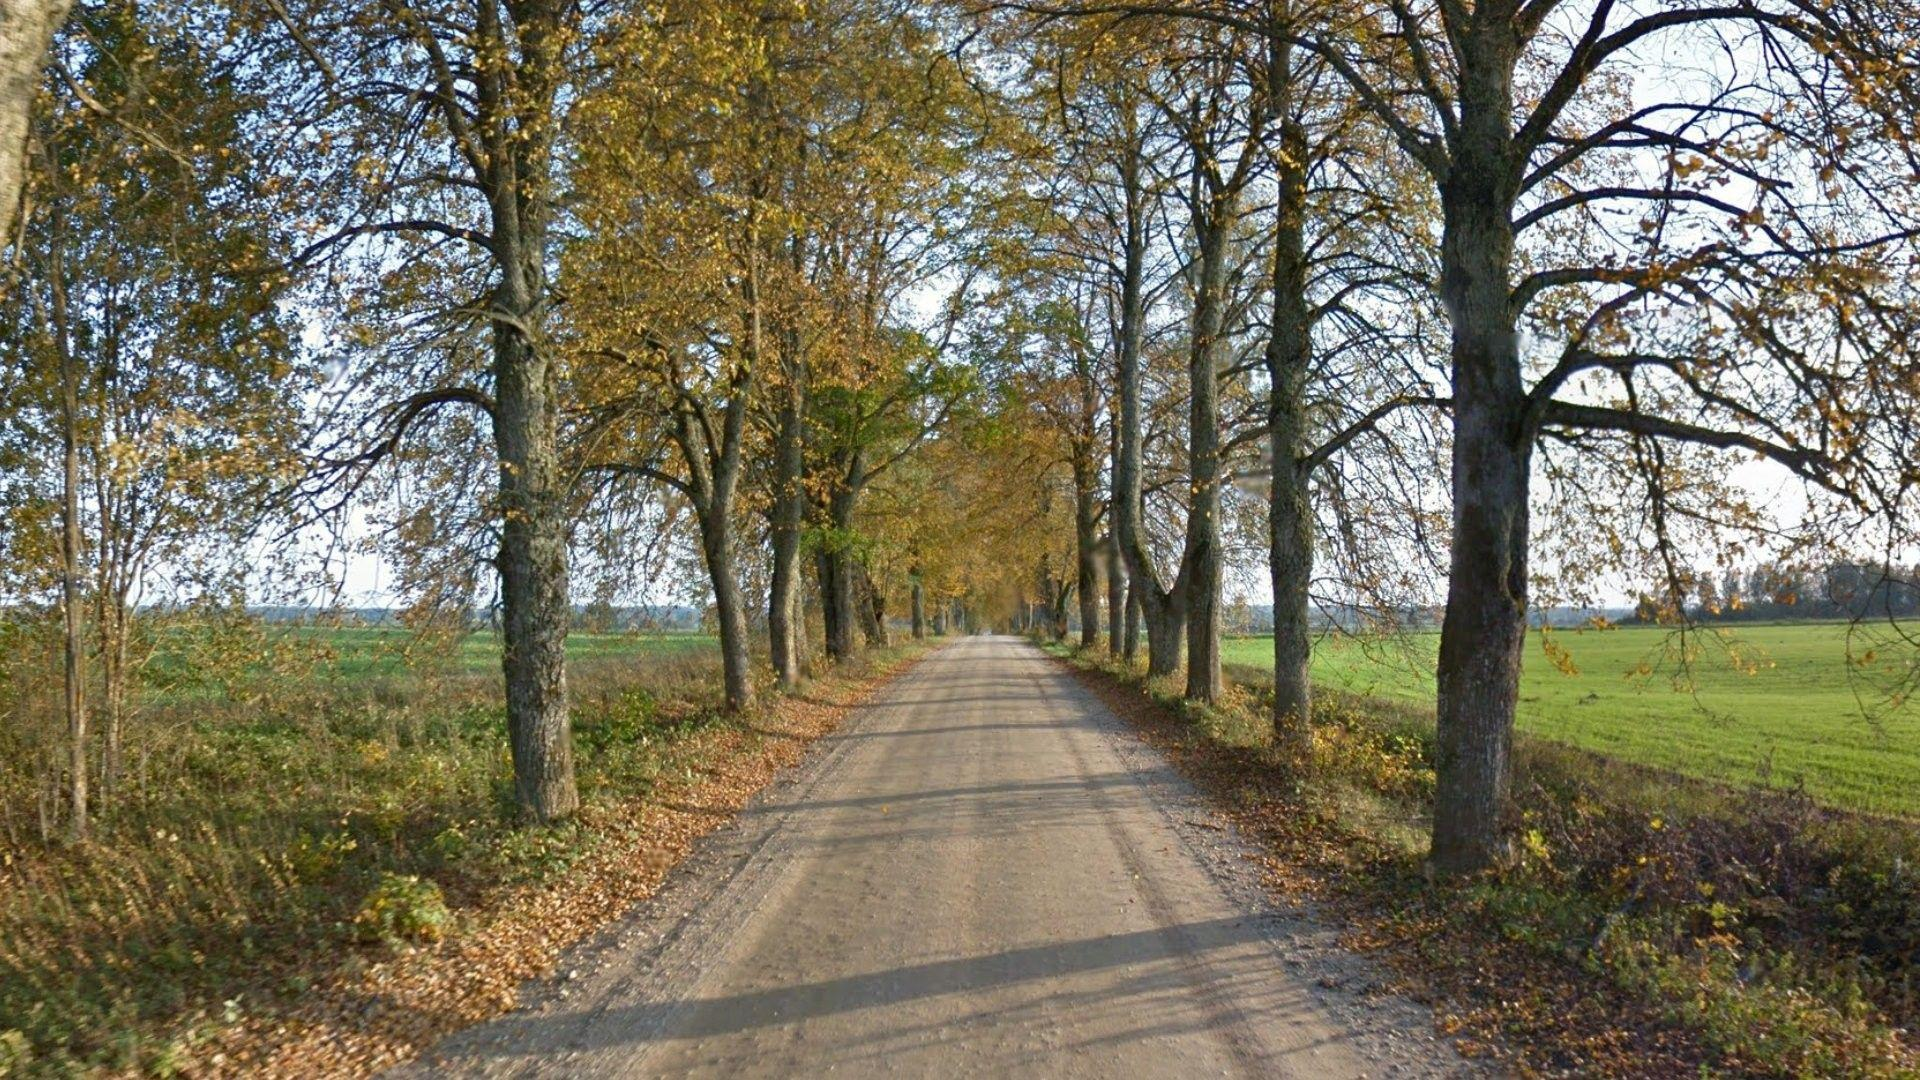 Miscellaneous: Tree Grass Field Forest Green Road Trees Autumn